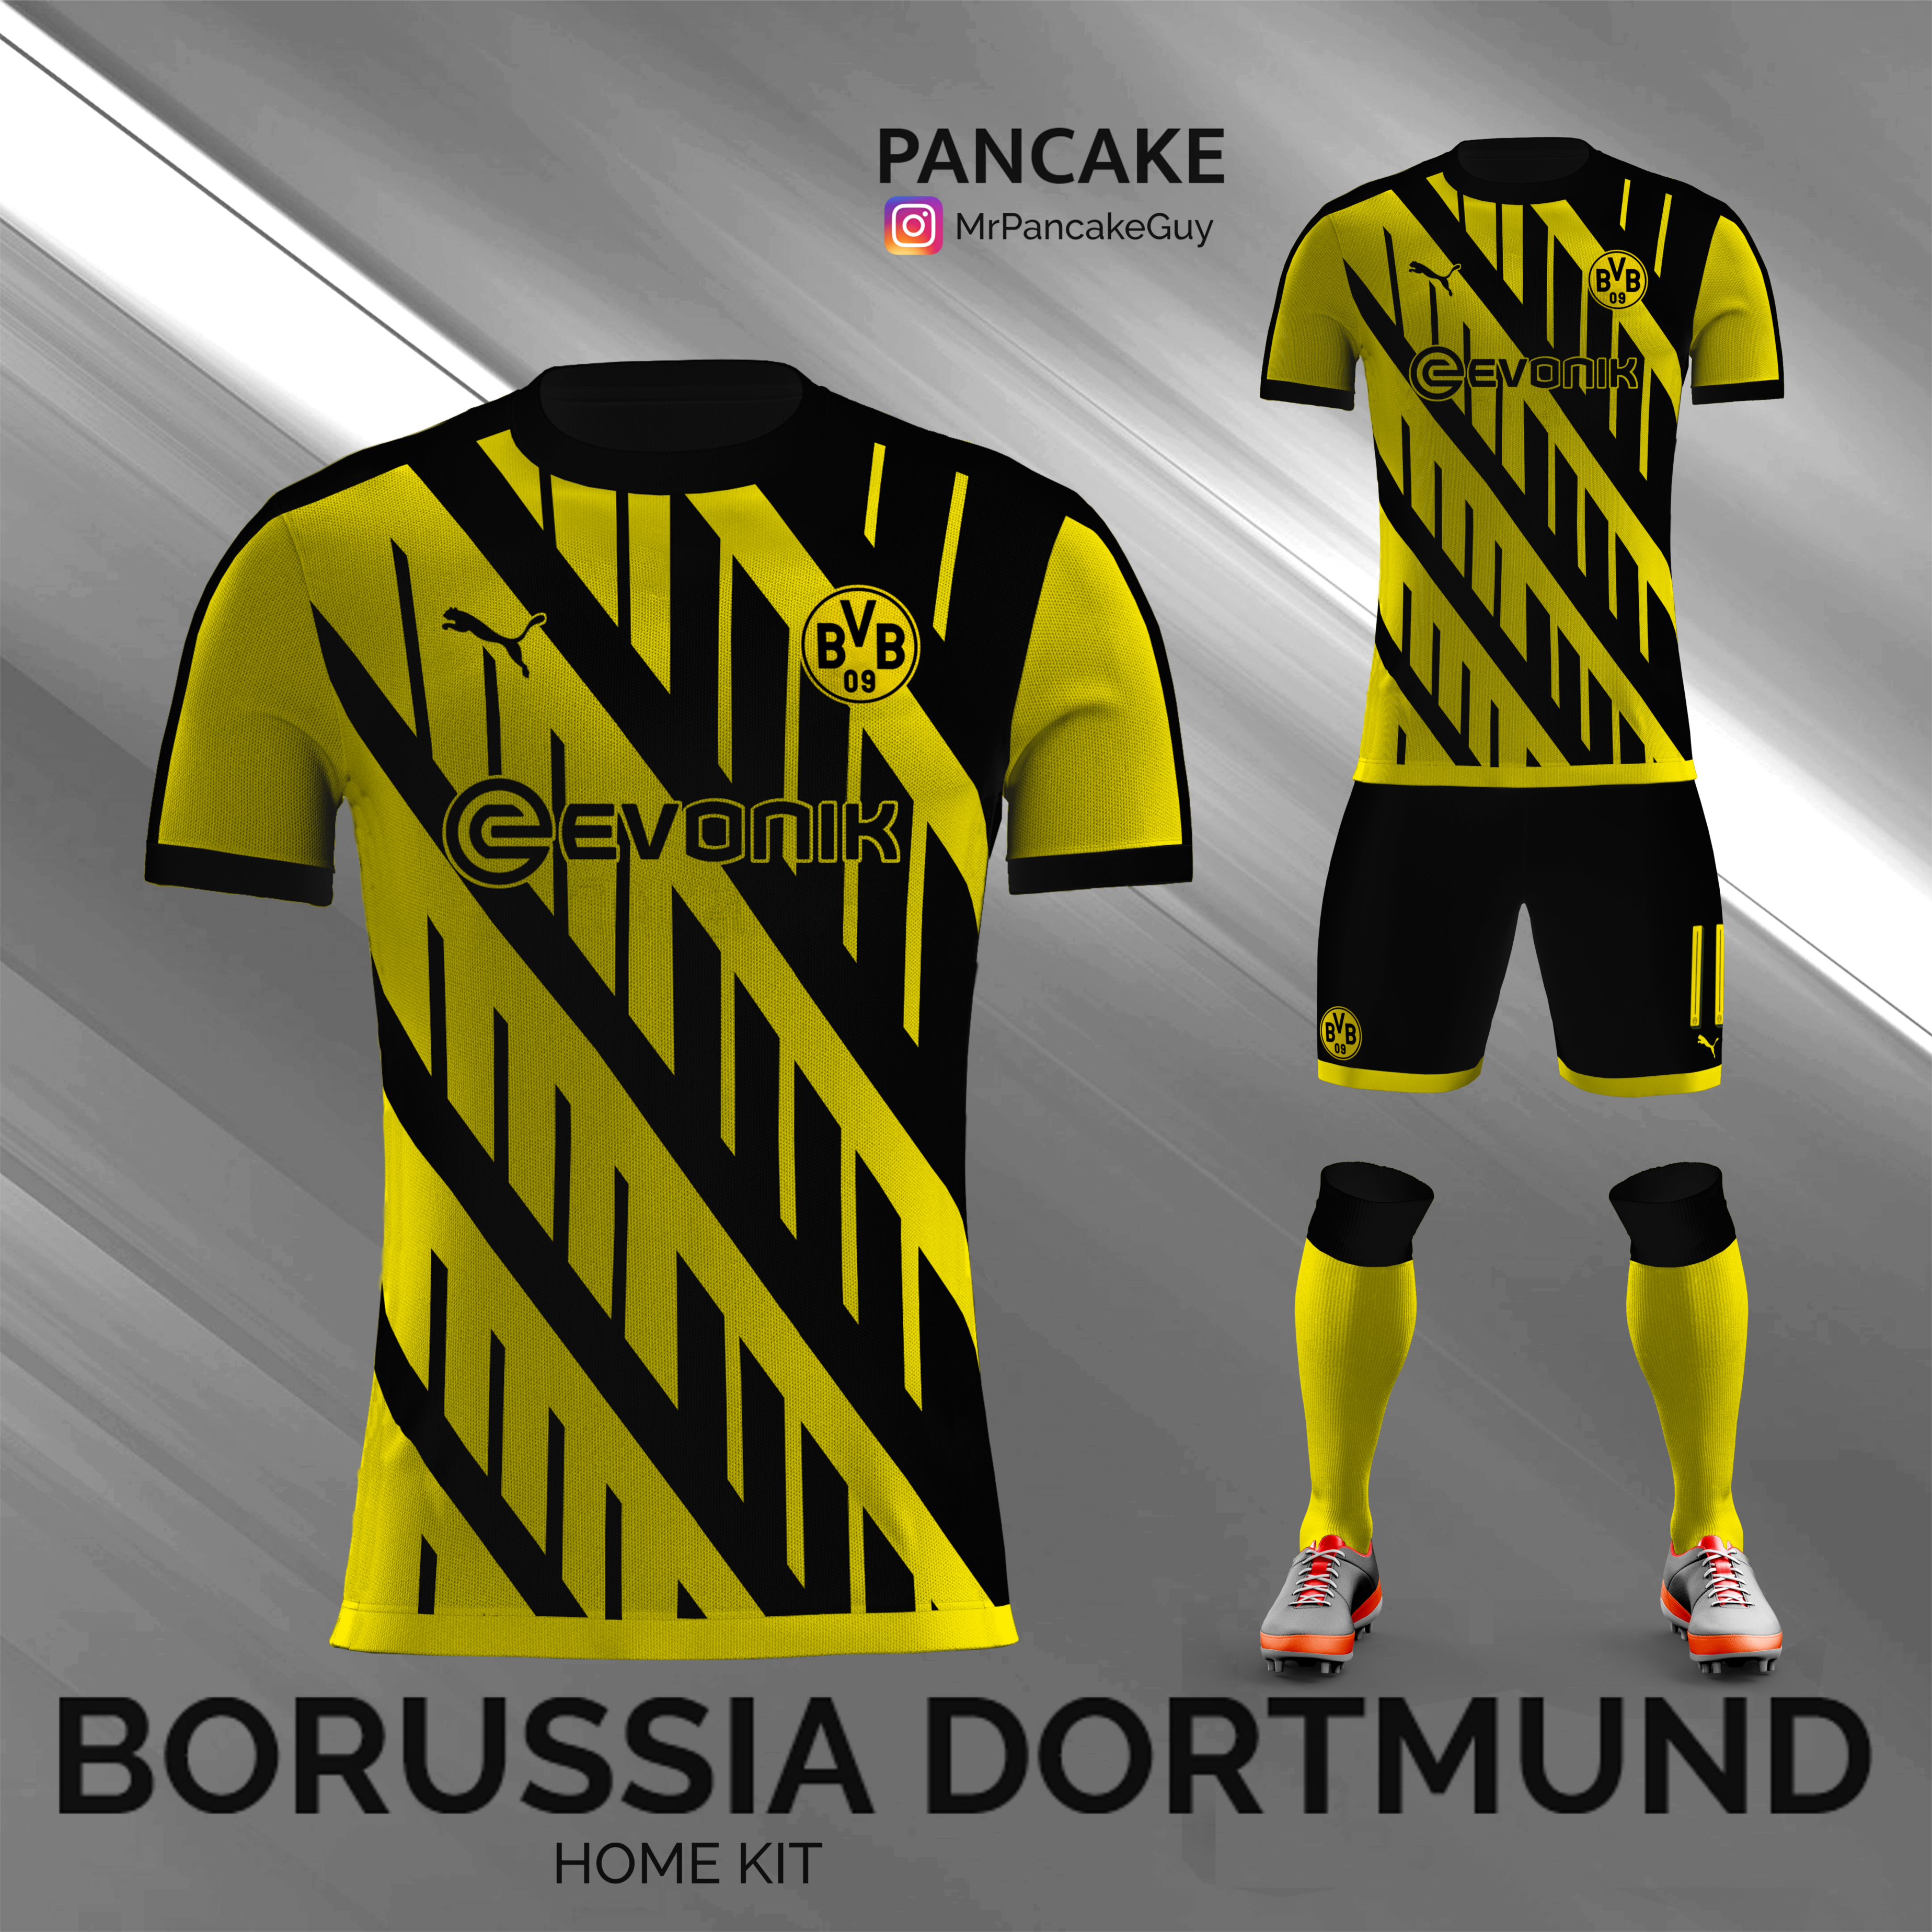 3fdf634c586f8 A home kit concept full of overlapping black and yellow lines for Borussia  Dortmund.